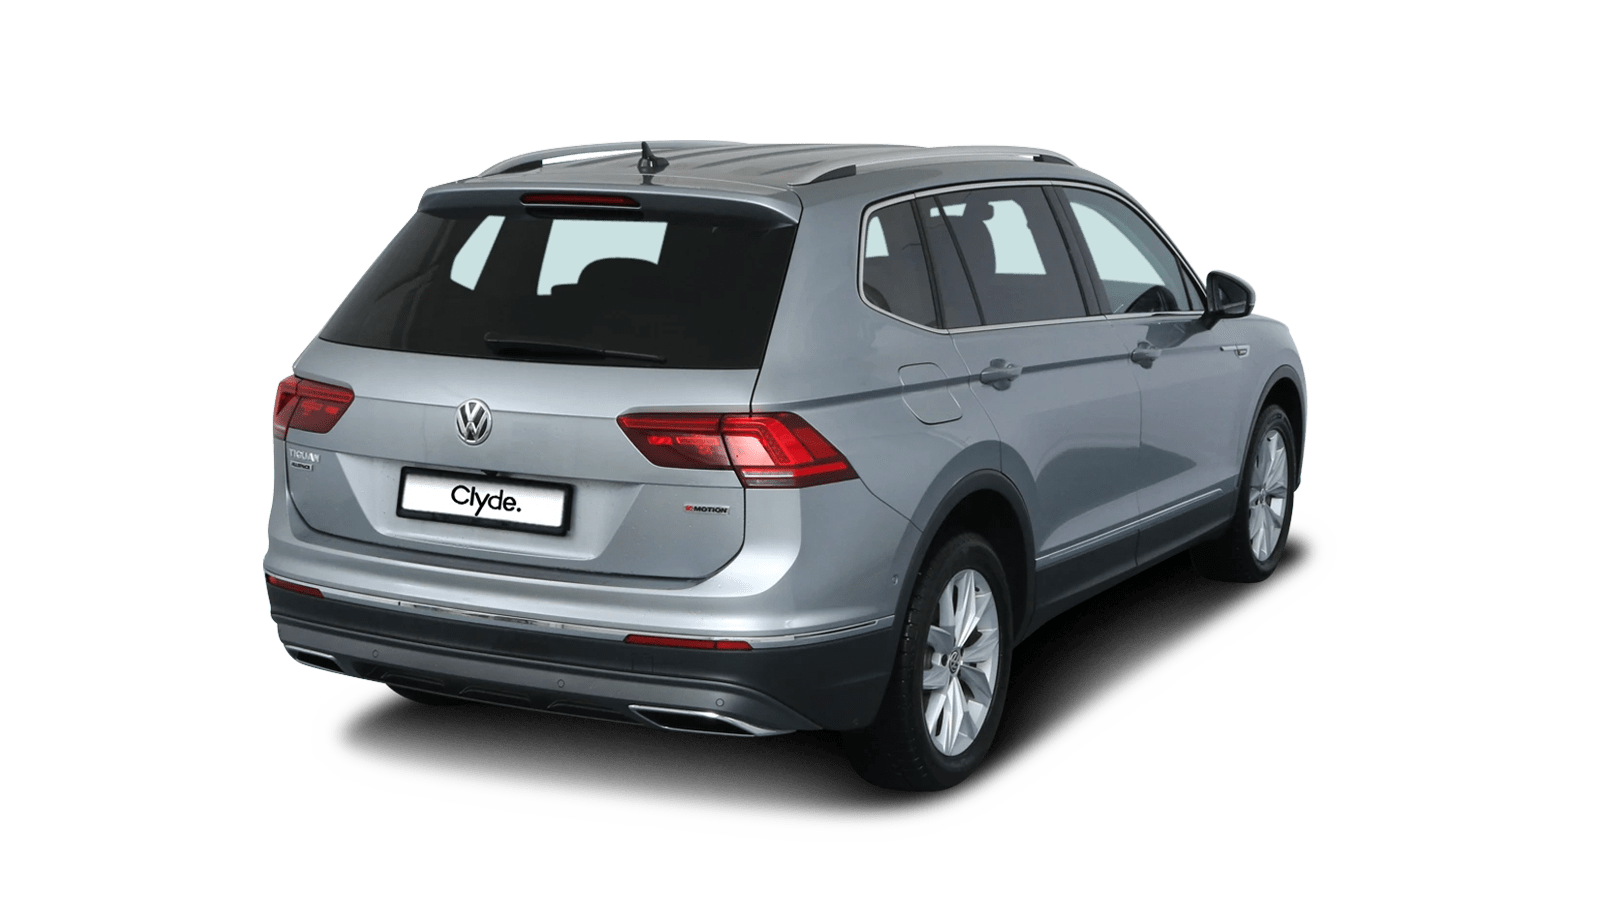 VW Tiguan Allspace Silver front - Clyde car subscription